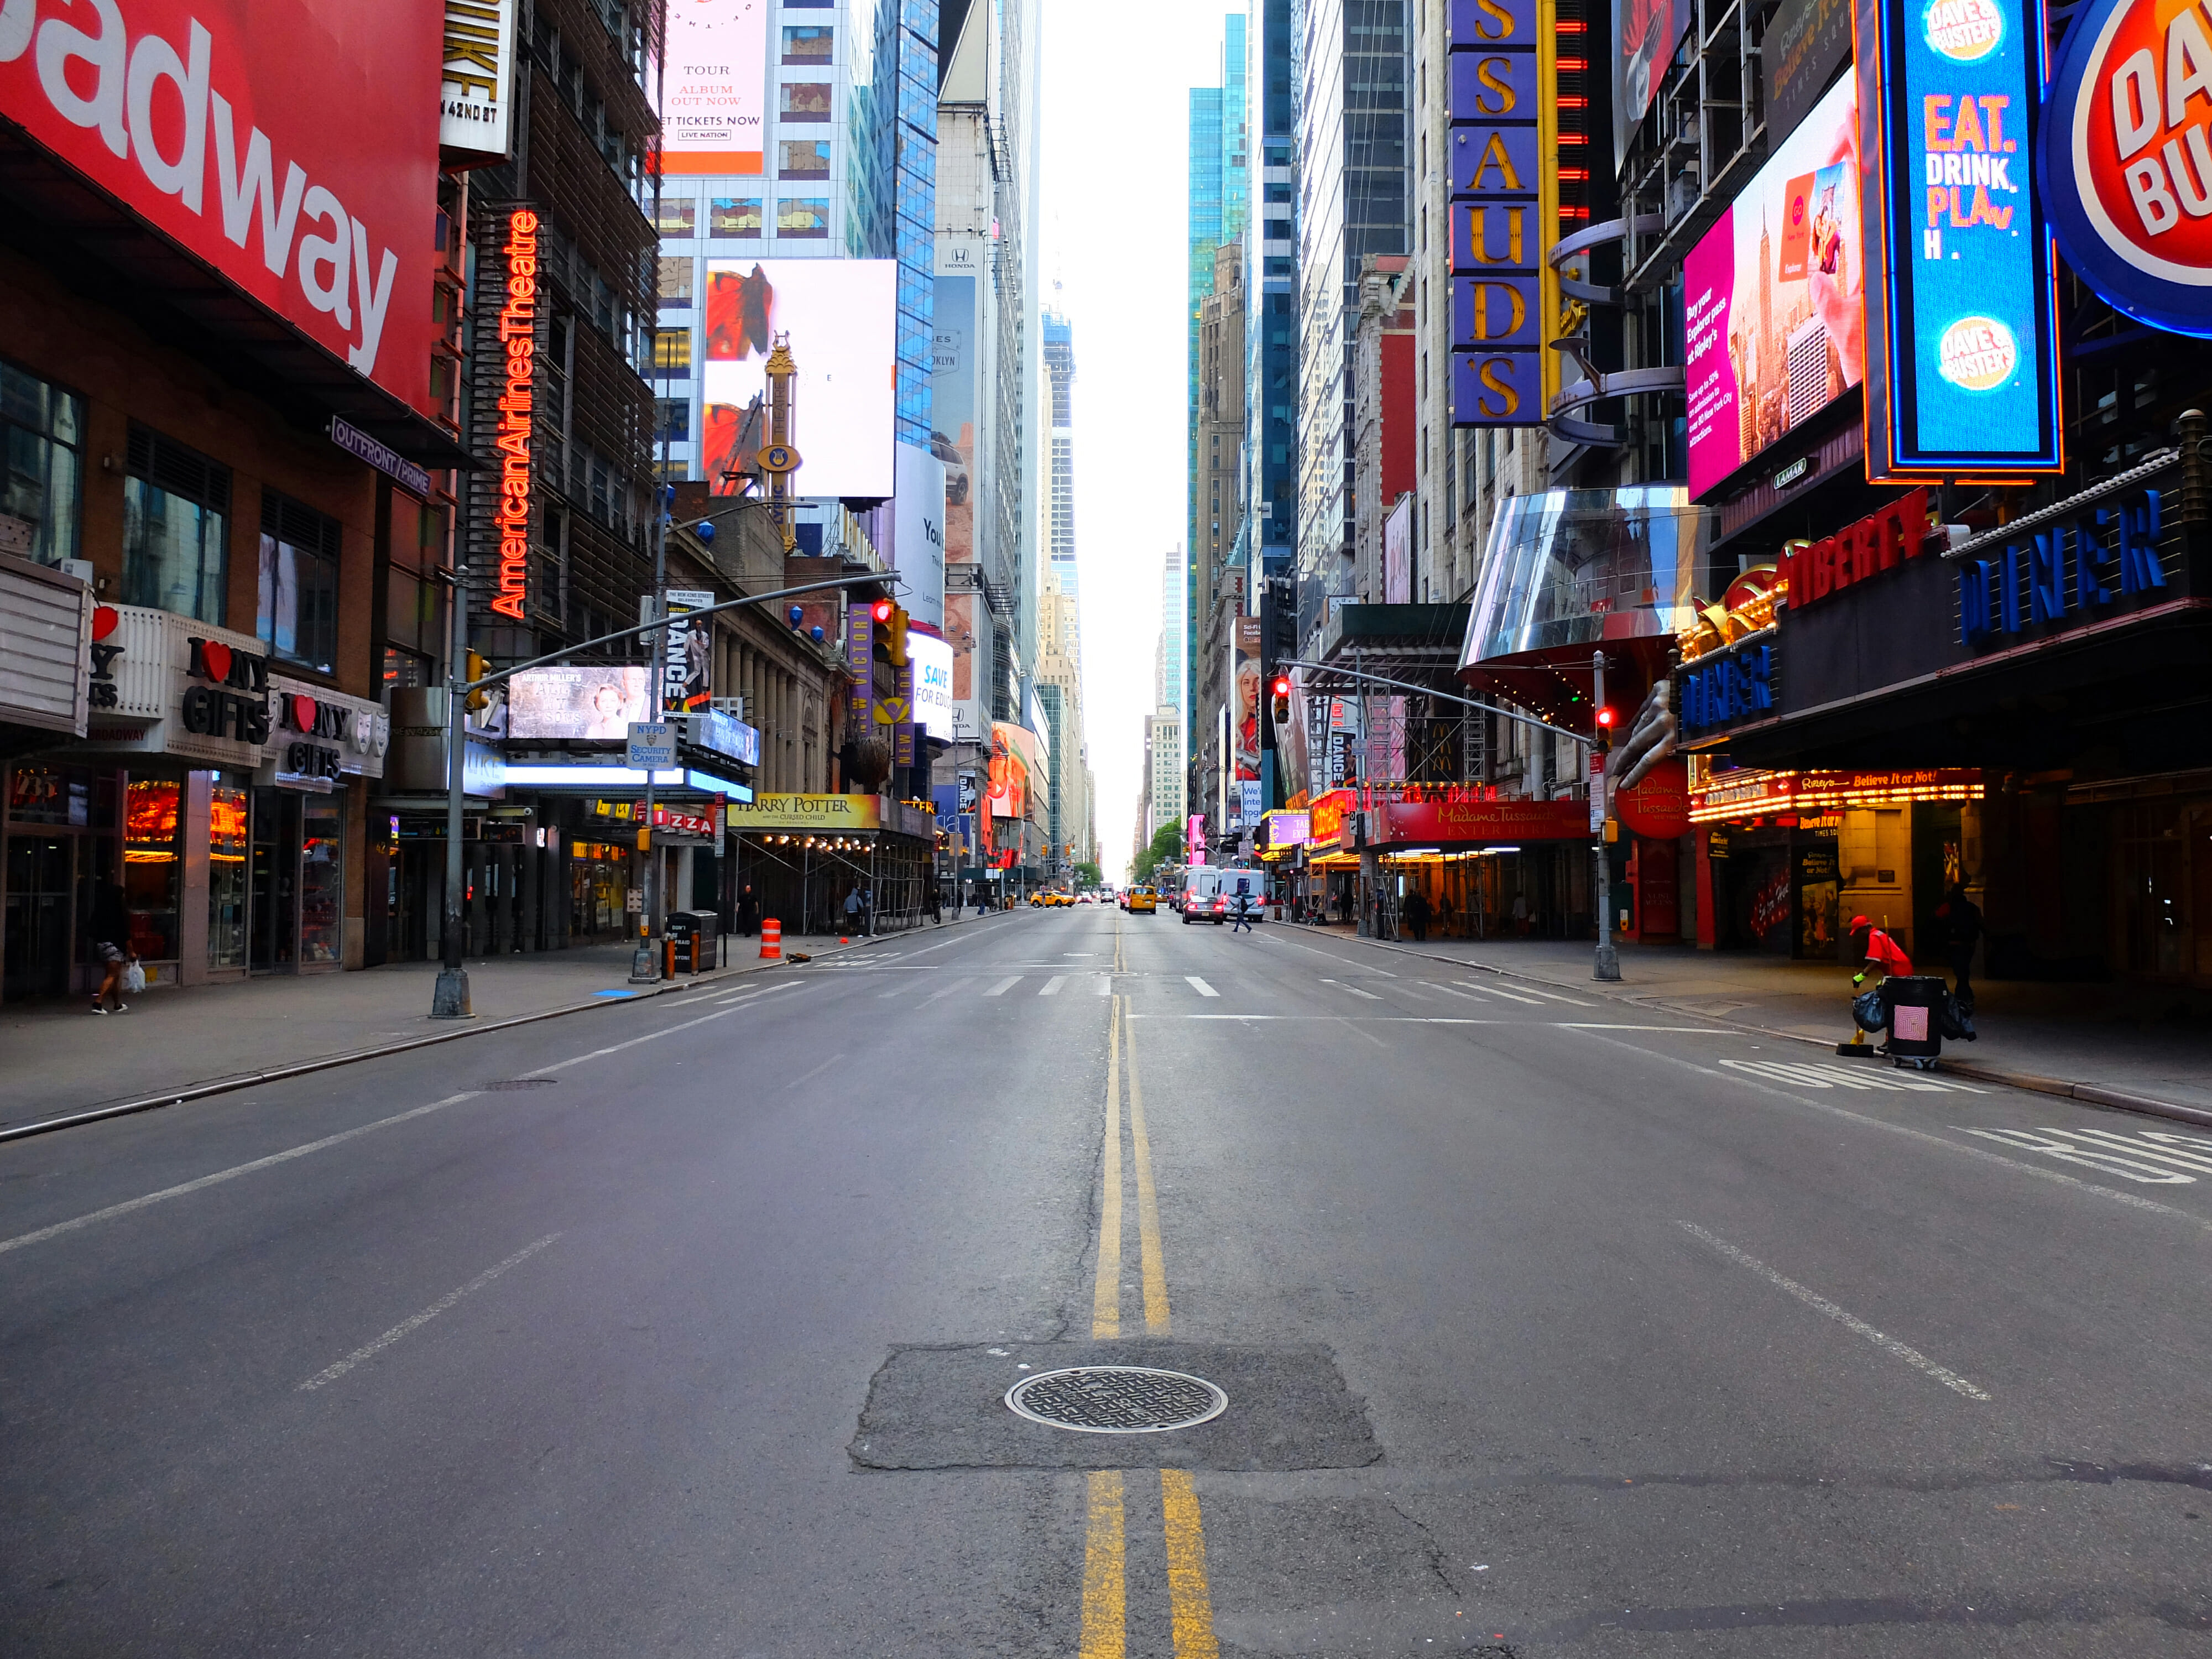 42nd Street in New York – High Quality Wallpaper